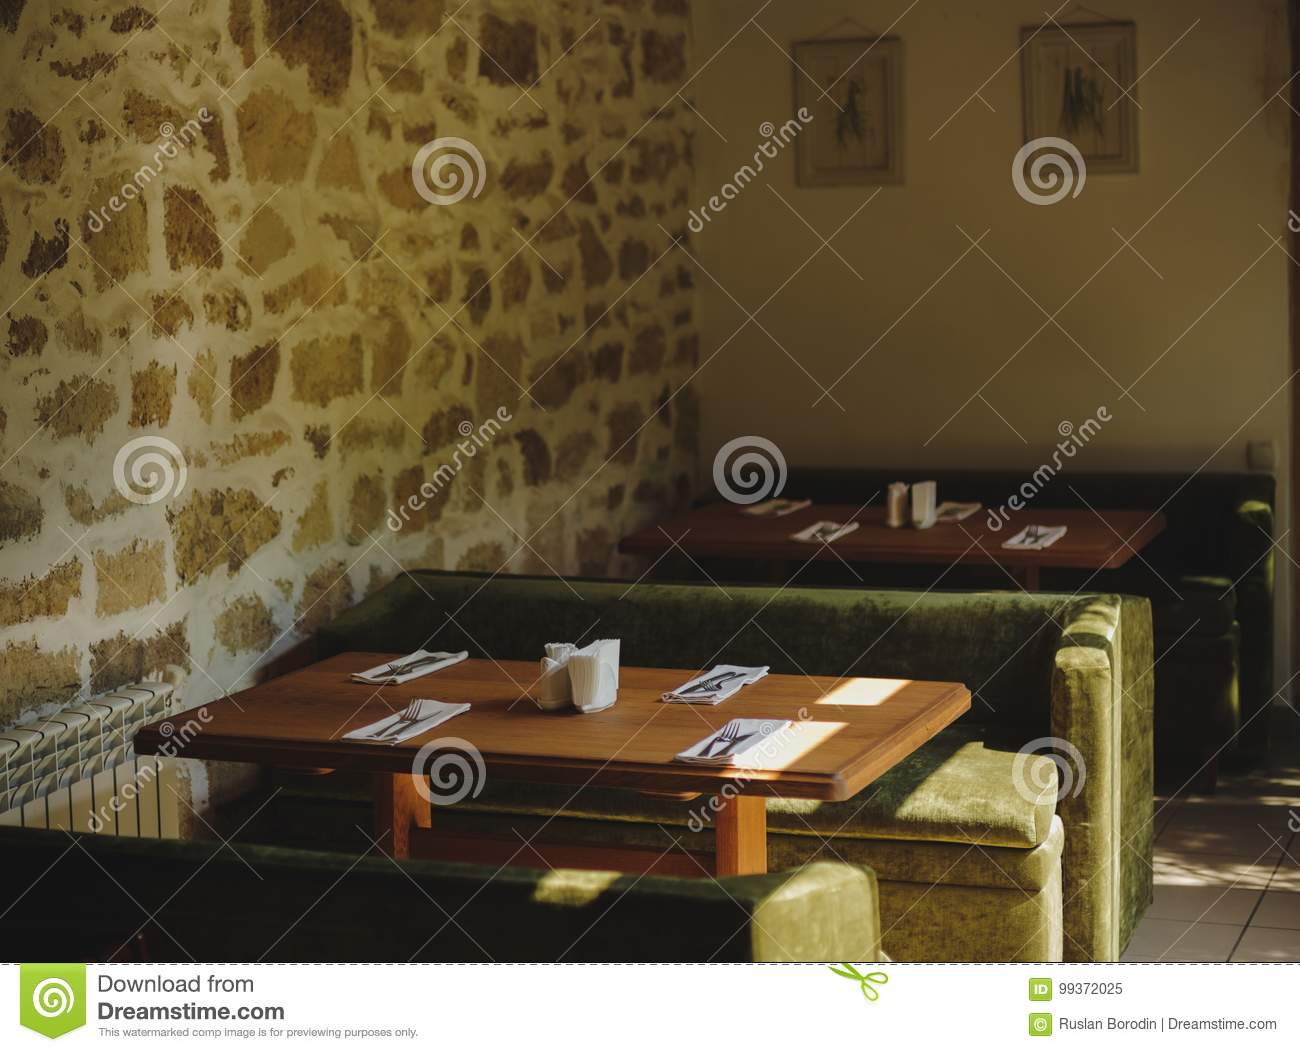 Vintage Restaurant Style Decorations Tables Sofas On A Blurred Indoors Background Cafe Interior Concept Copy Space Stock Image Image Of Architecture Modern 99372025